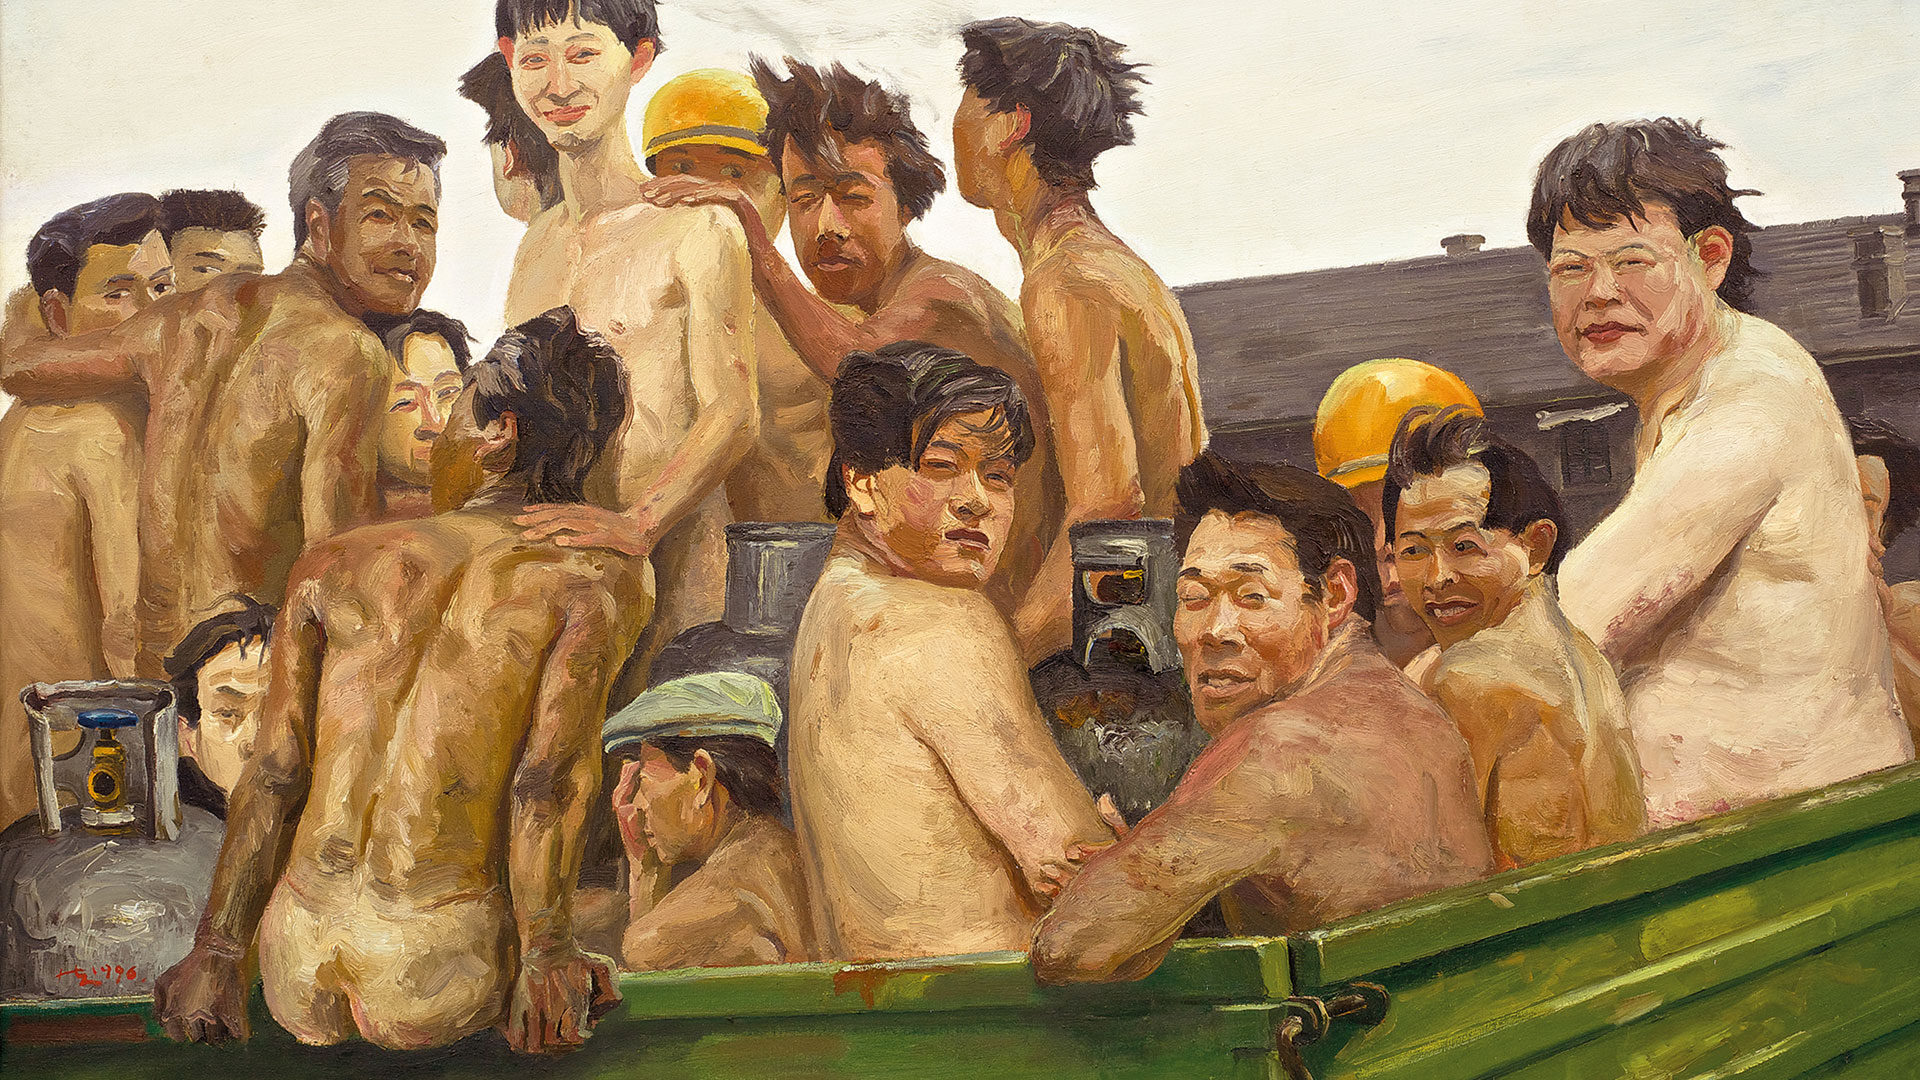 Liu Xiaodong, 'Disobeying the Rules', 1996